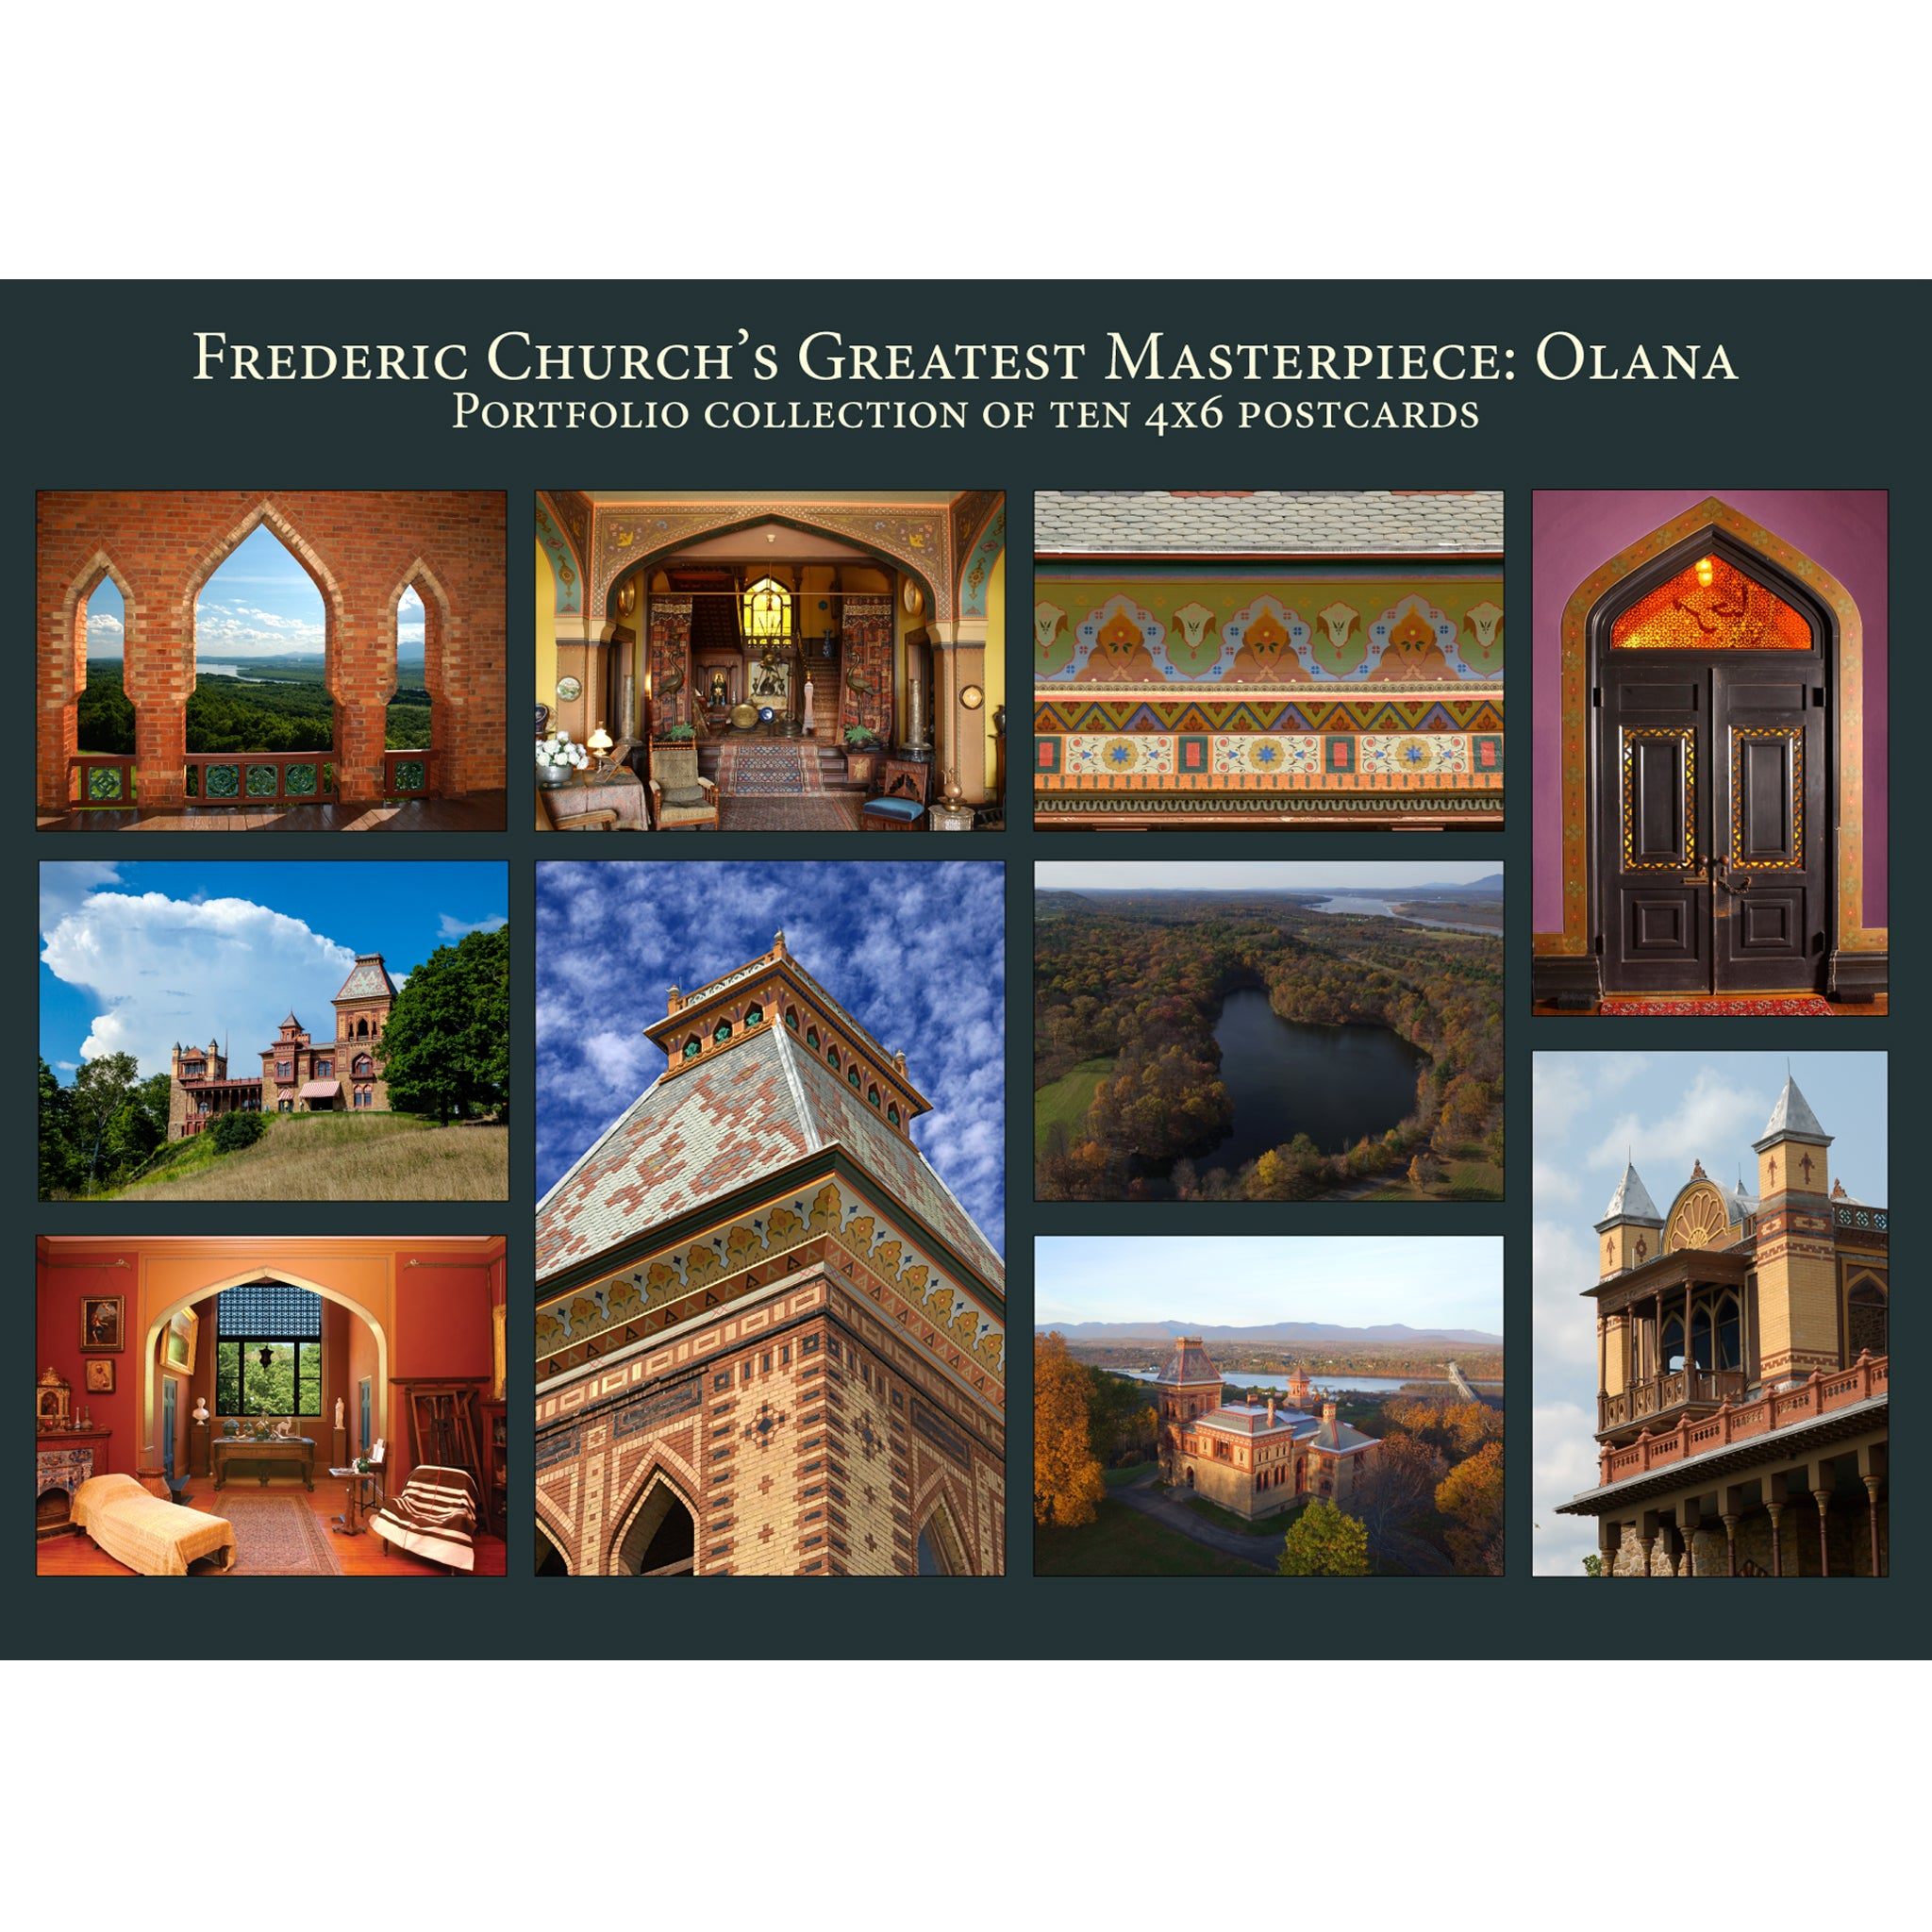 Frederic Church's Greatest Masterpiece: Olana Postcard Portfolio